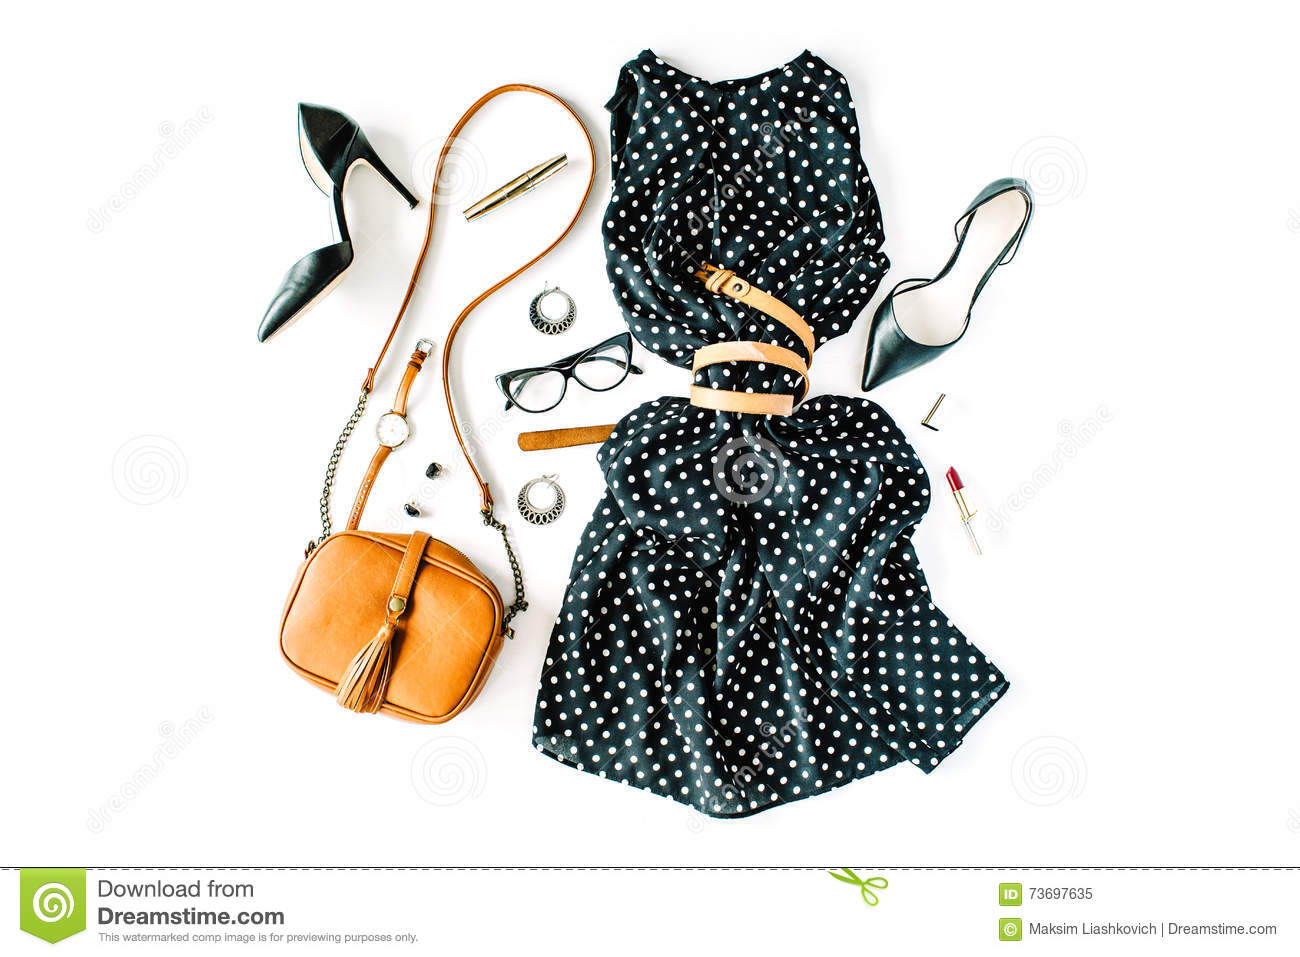 Flat lay feminine clothes and accessories collage with black dress, glasses, high heel shoes, purse, watch, mascara, lipstick, ear